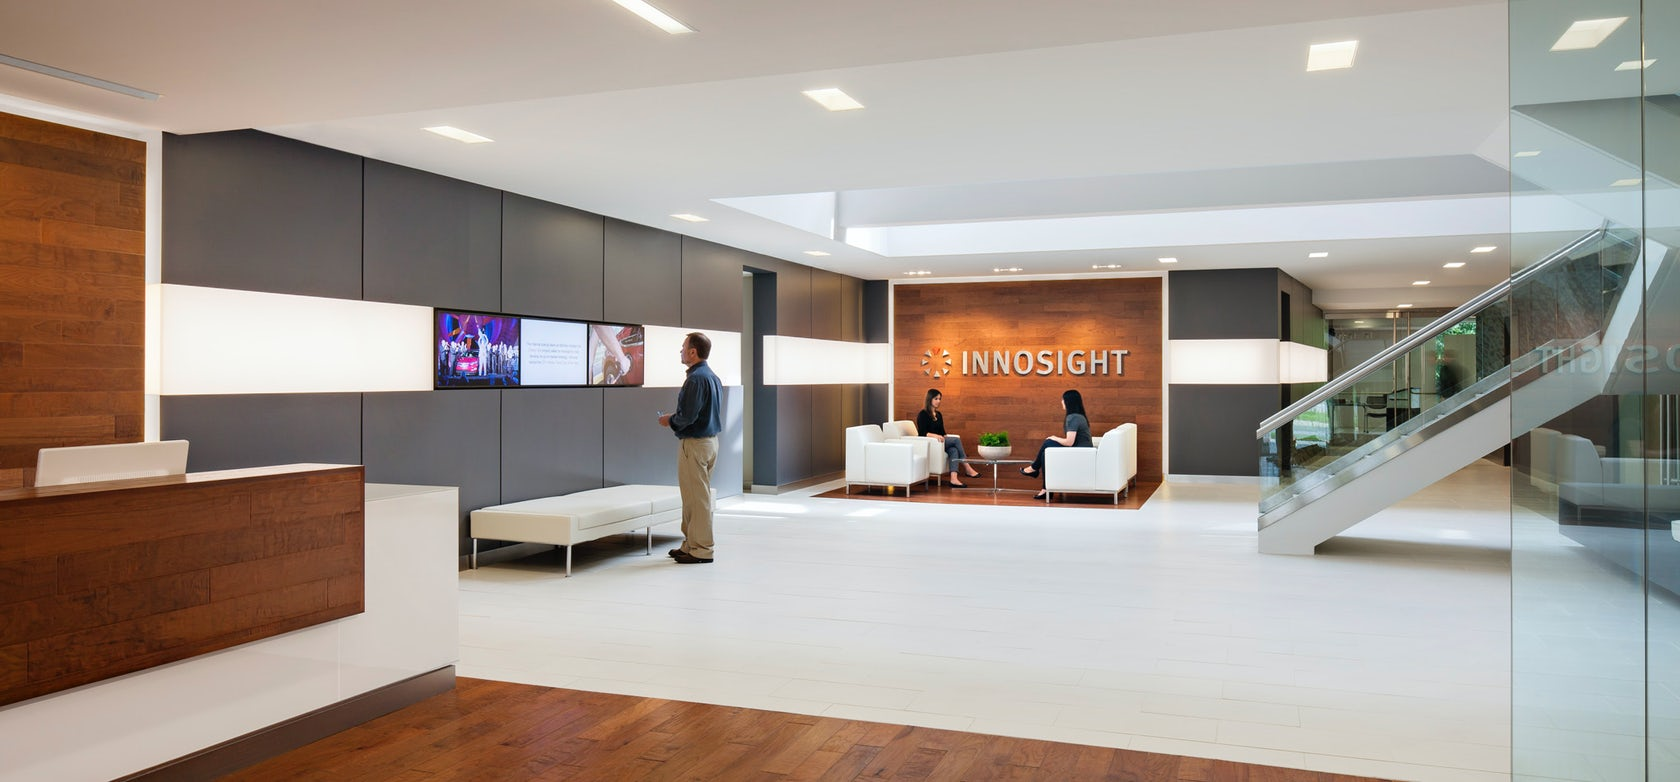 Innosight innovation center architizer for Innovation consulting firms chicago